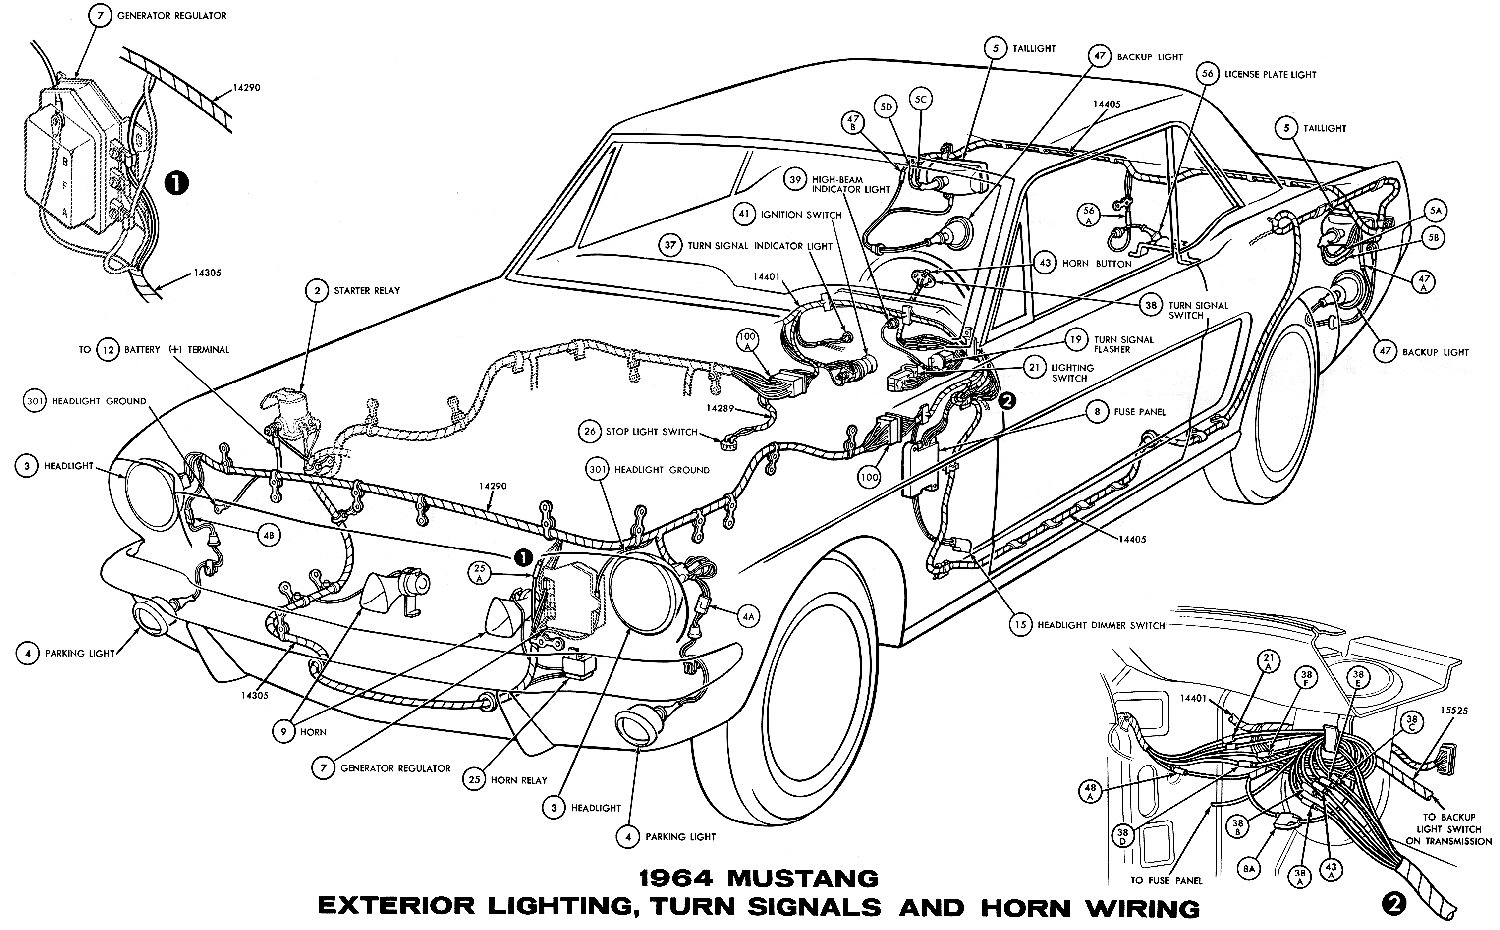 1964 Mustang Exterior Lighting, Turn Signals and Horns Pictorial or  Schematic